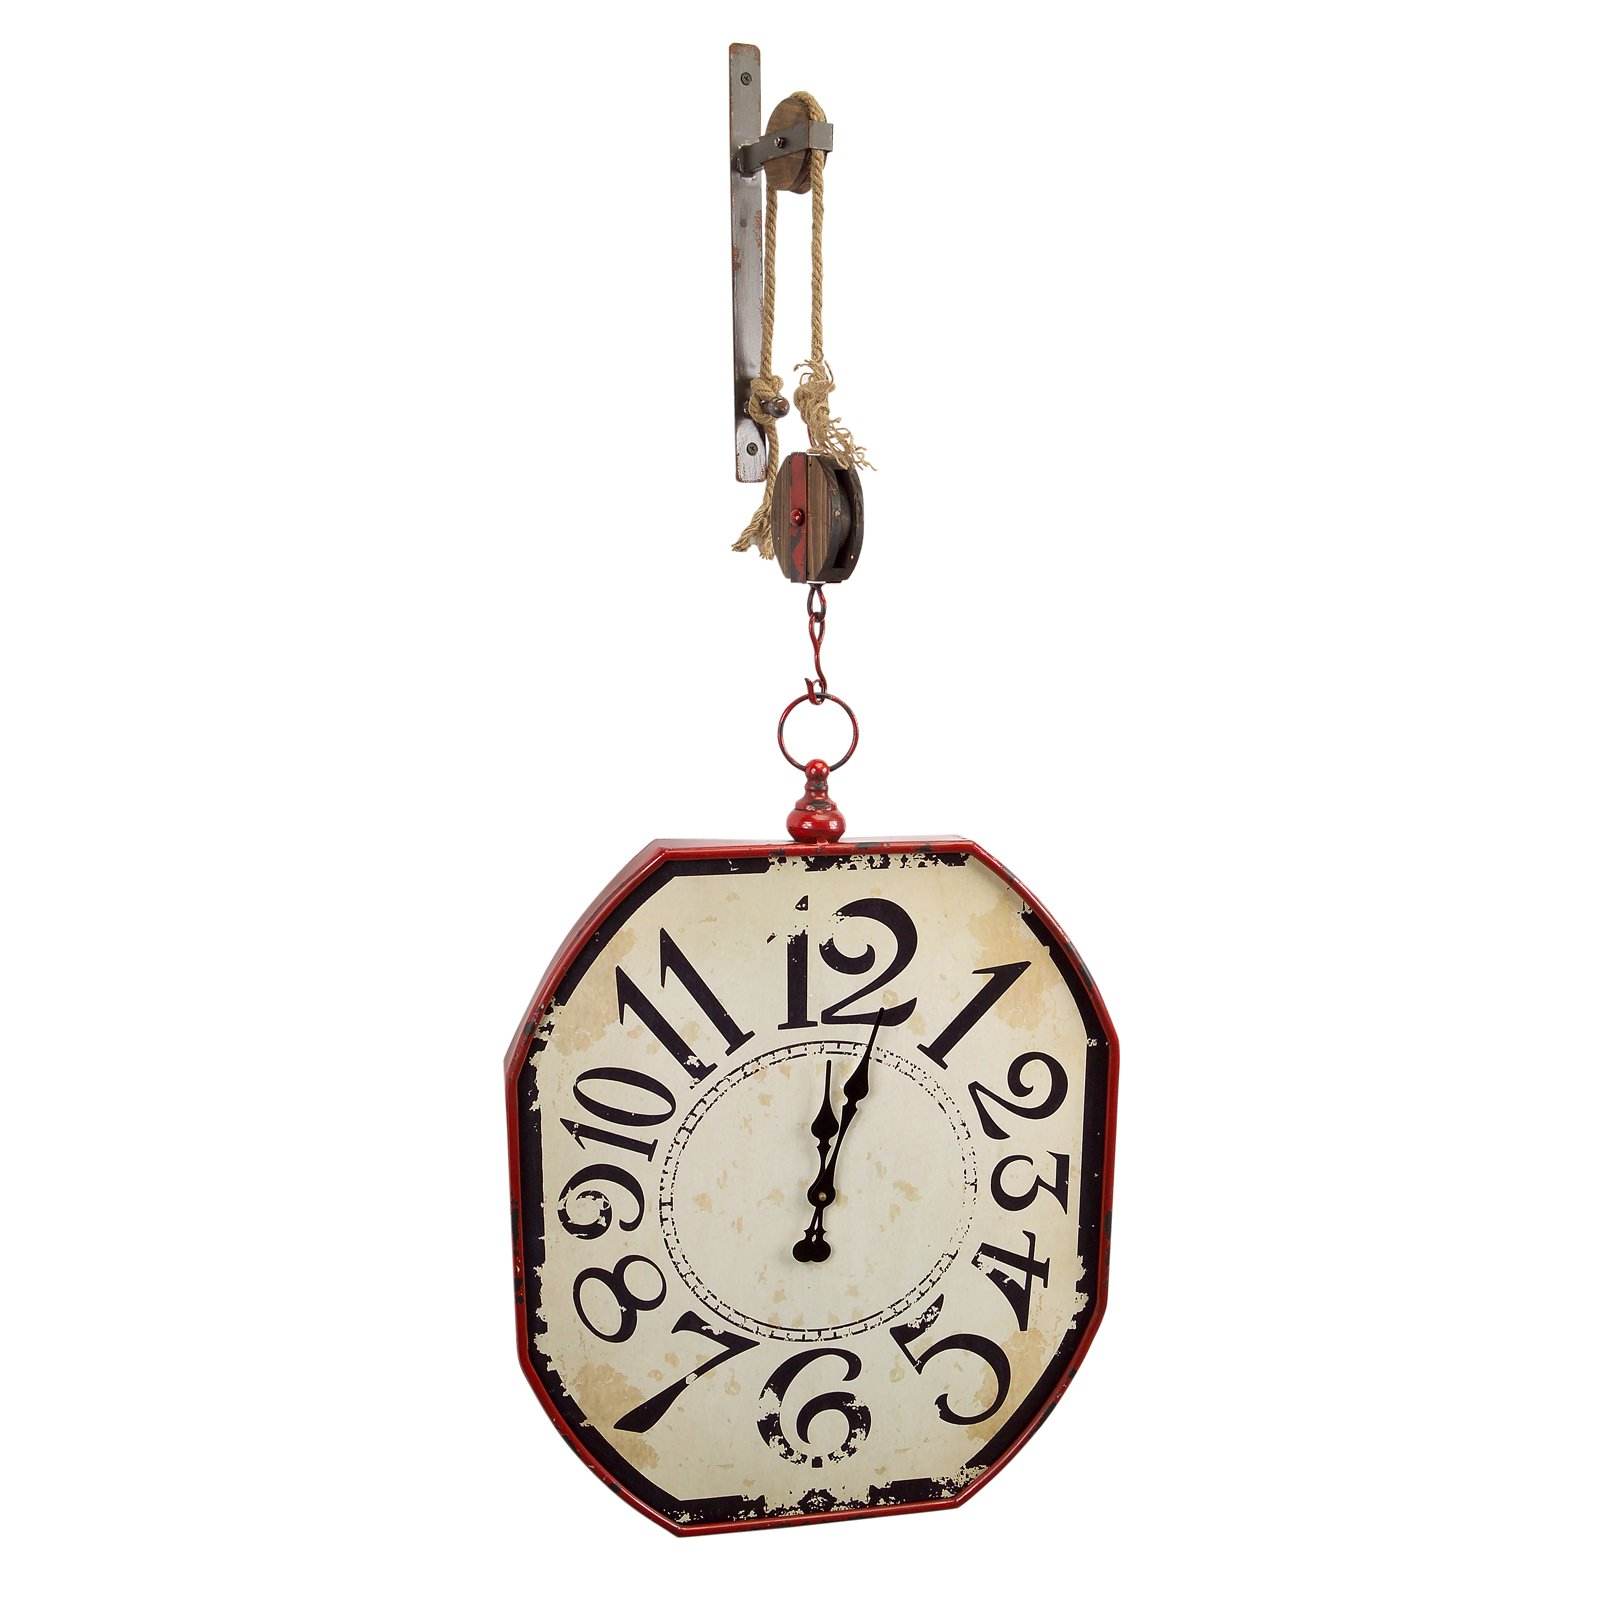 48 Inch Pulley Mounted Distressed Wall Clock RC Willey Furniture Store